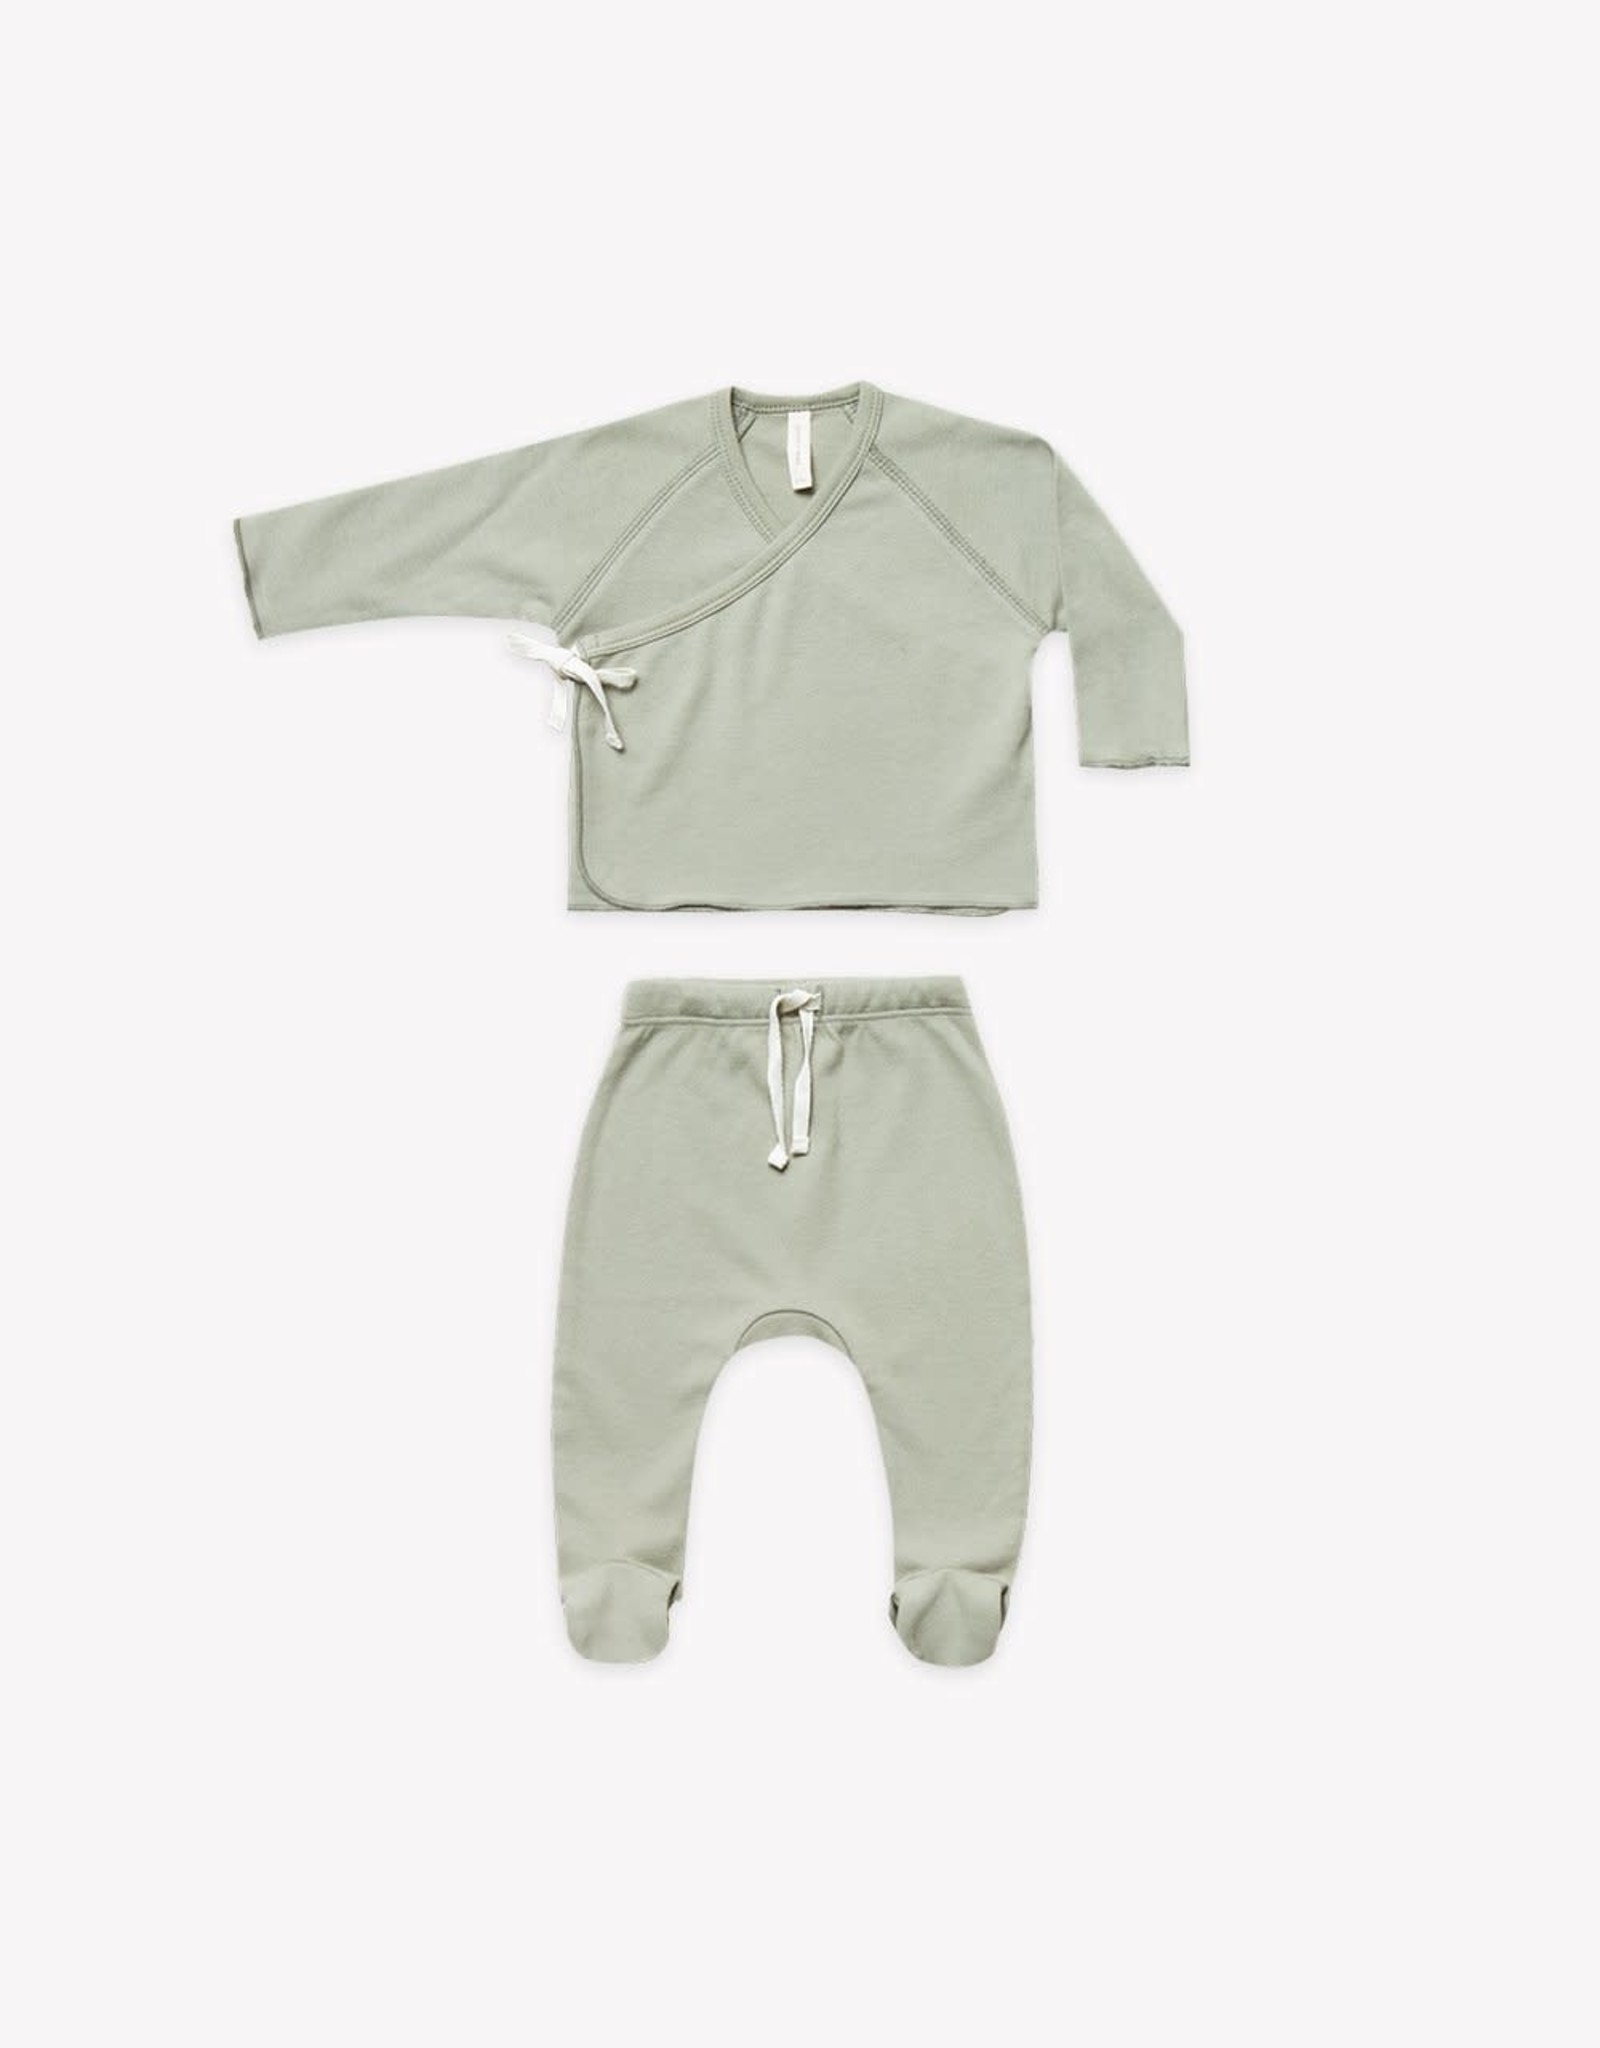 Quincy Mae Quincy Mae Kimono Top & Footed Pant Set